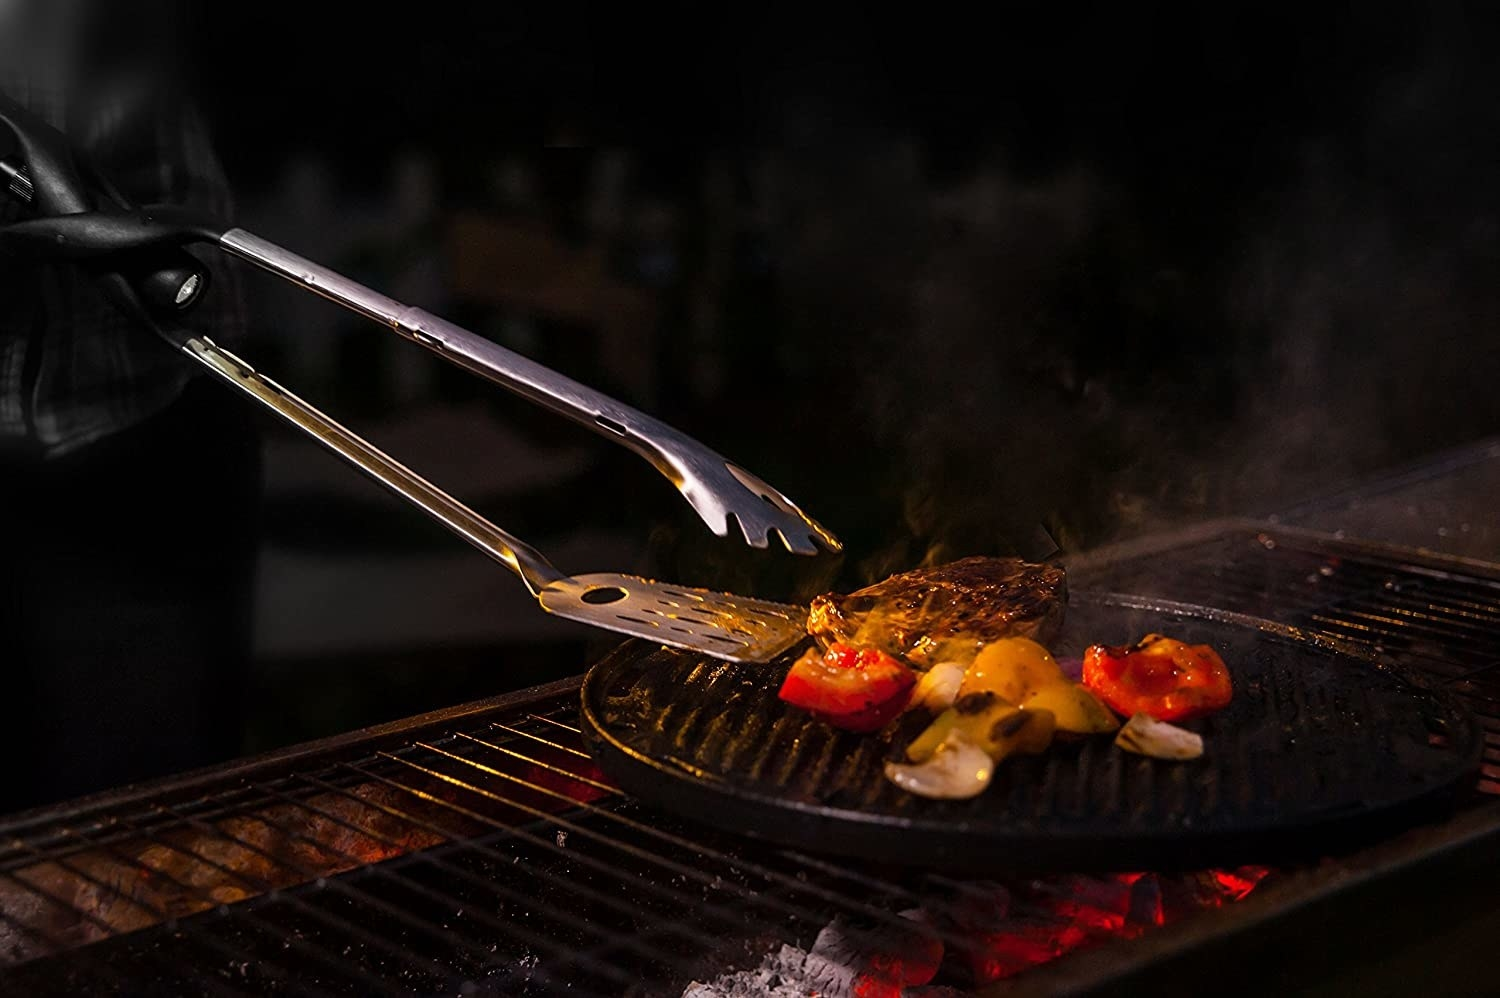 A model using the tool as tongs, as head of the tong is a spatula and the other a traditional tong, with a flashlight shining light from base between the tongs onto the food on the grill